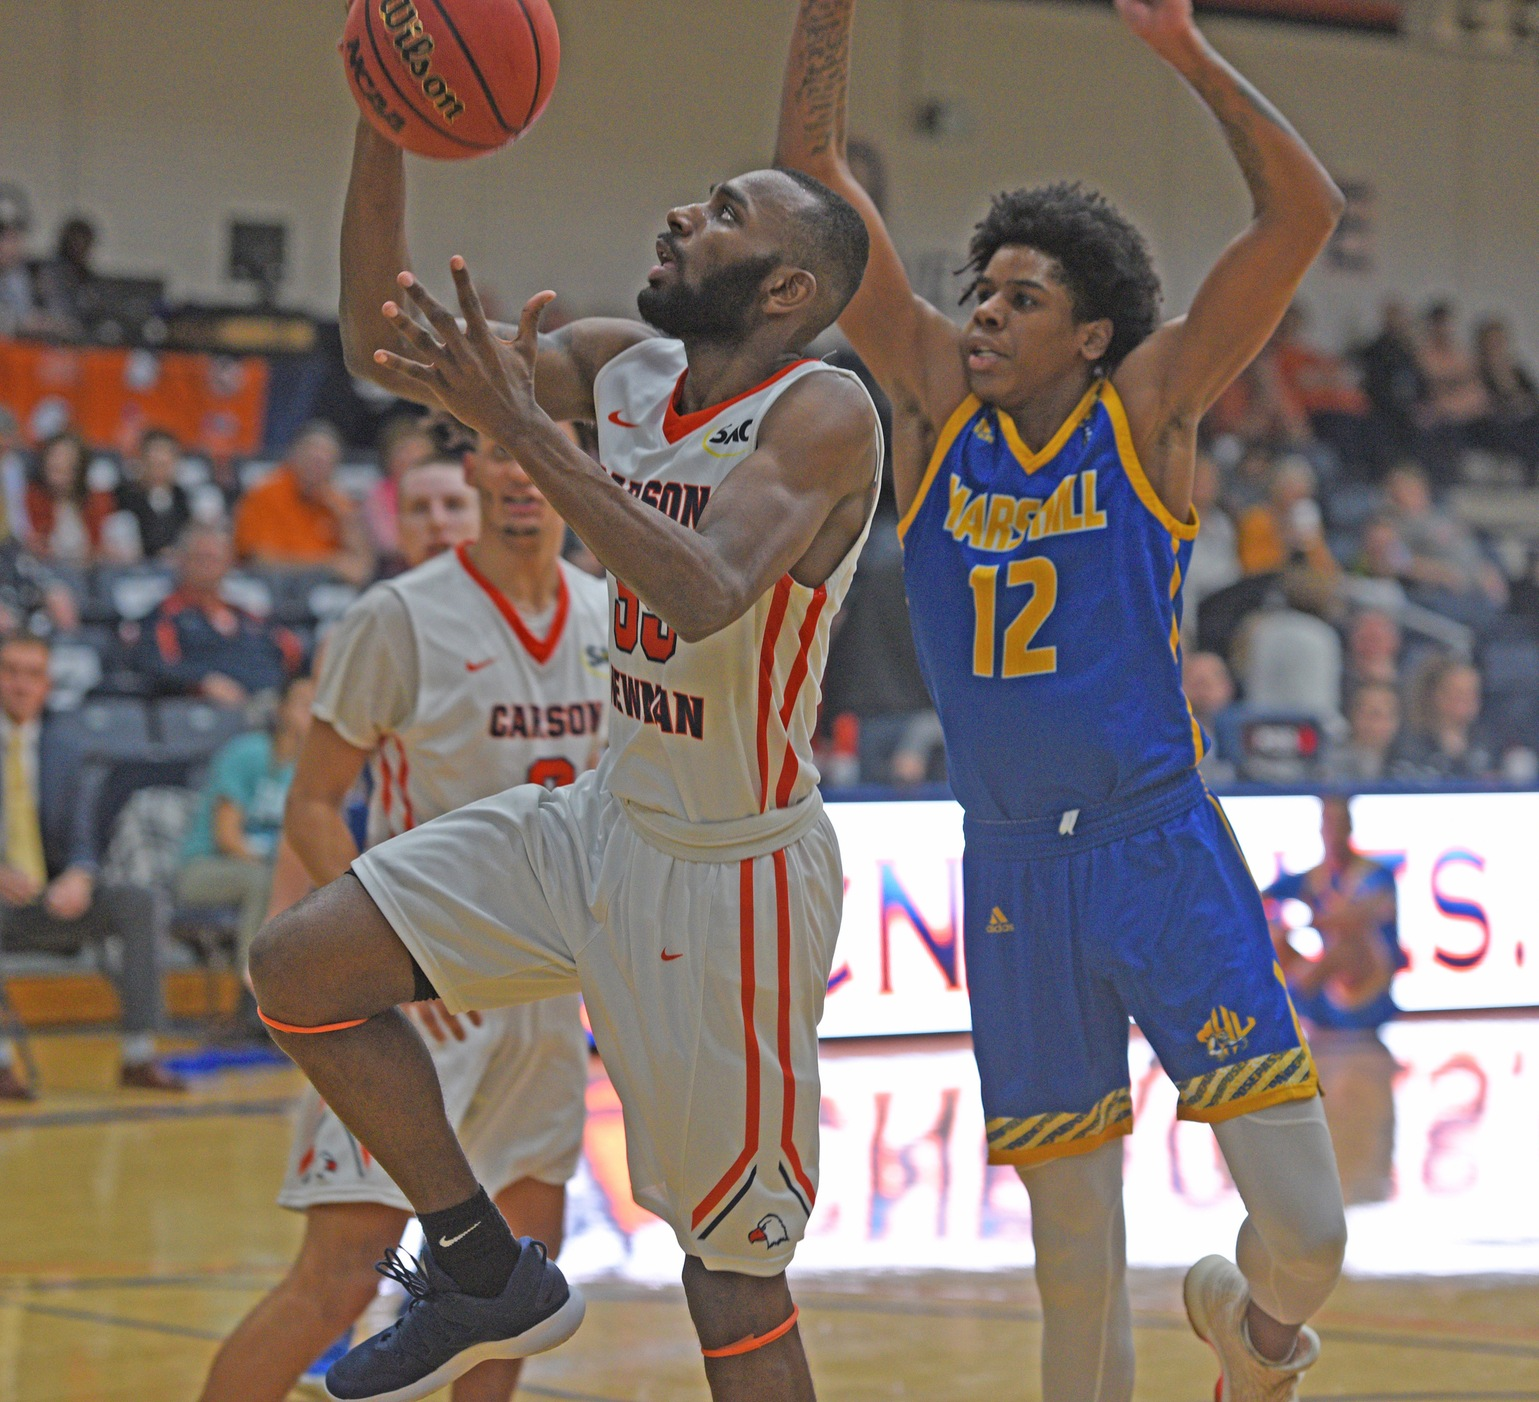 Carson-Newman - Mars Hill part two, Electric Boogaloo set for Feb. 25